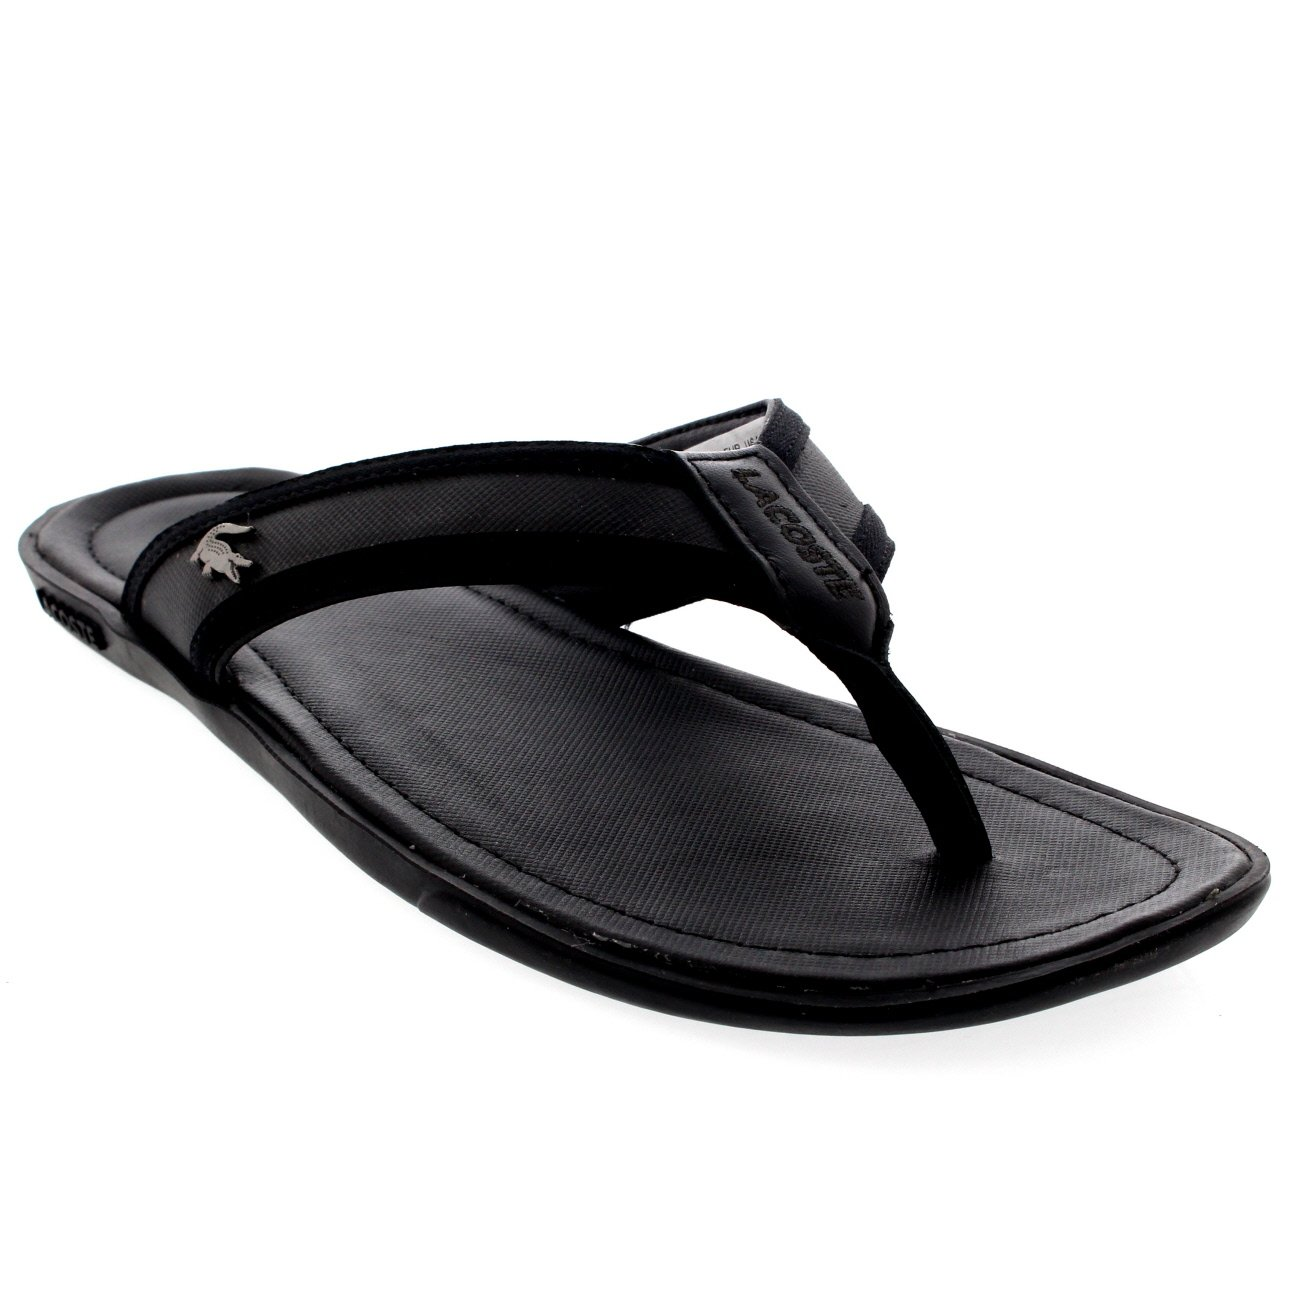 7f37a471fd6b0 Lacoste Mens Carros 6 Beach Leather Holiday Slip On Flip Flops Sandals -  Dark Blue - 12  Amazon.co.uk  Shoes   Bags